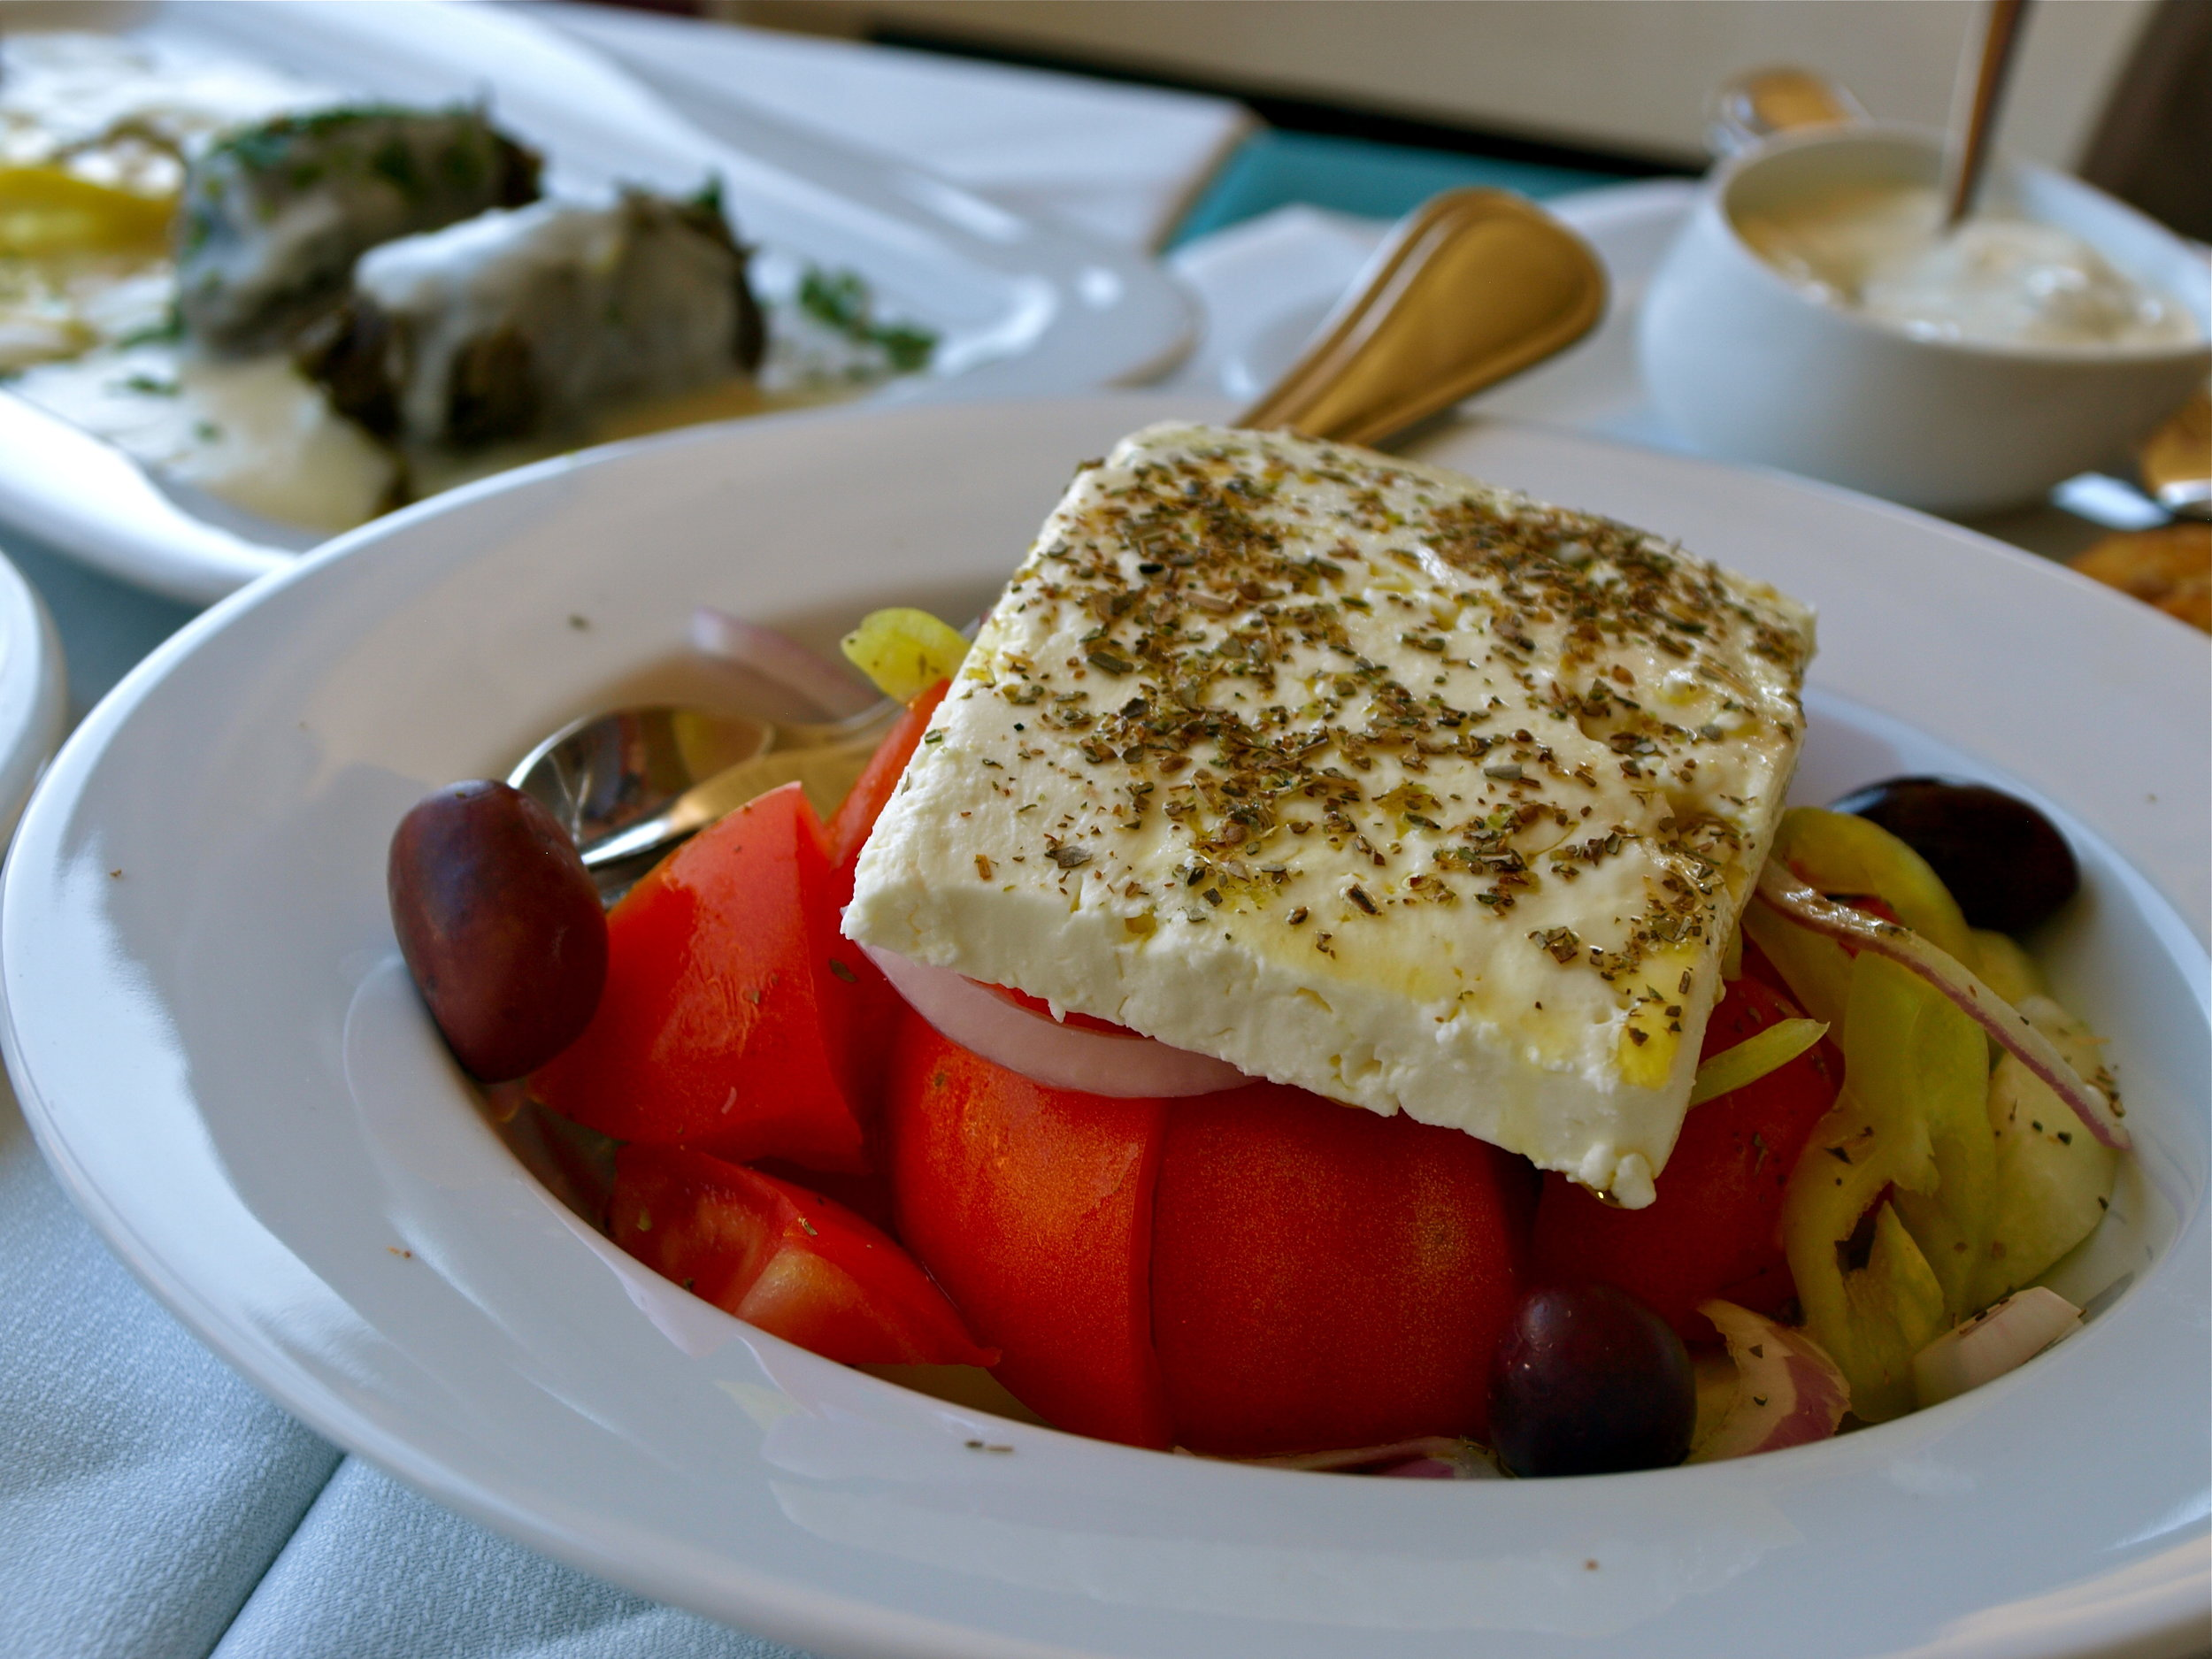 You haven't been to Greece if you haven't tasted the real true Greek salad topped with feta cheese! (Picture by Katherine Poseidon)